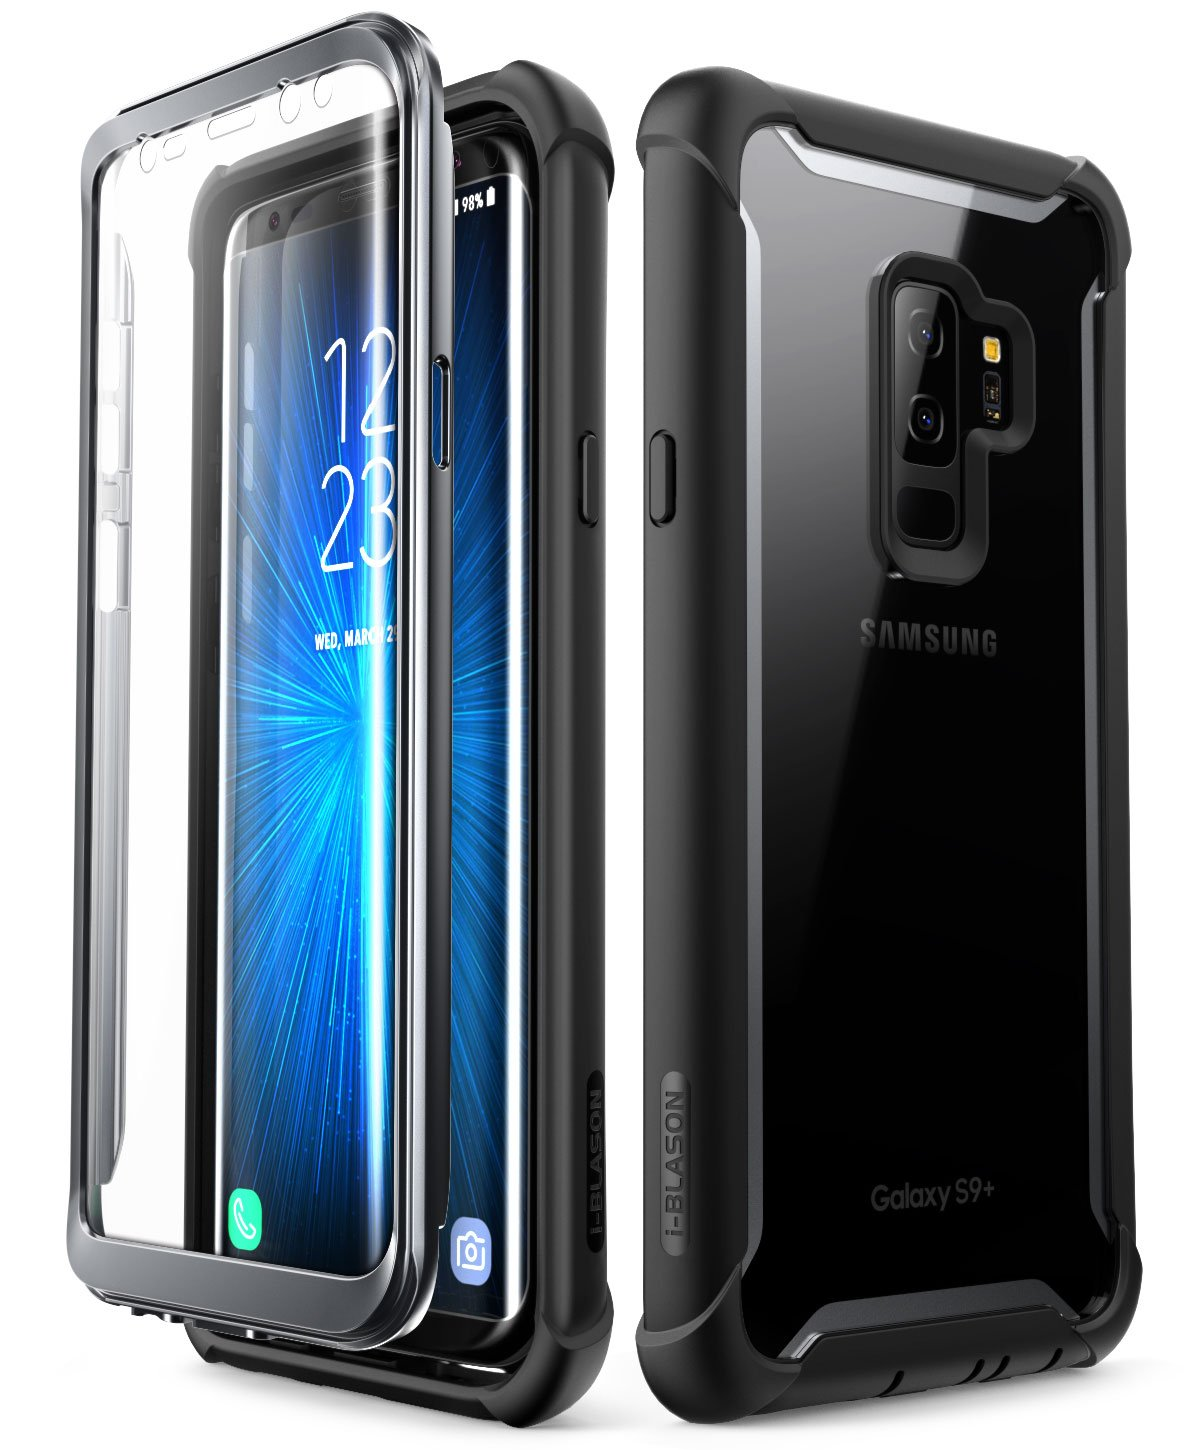 8f55bcfdb7 Supcase Case for Galaxy S9+ Plus - Black: Amazon.ca: Cell Phones &  Accessories